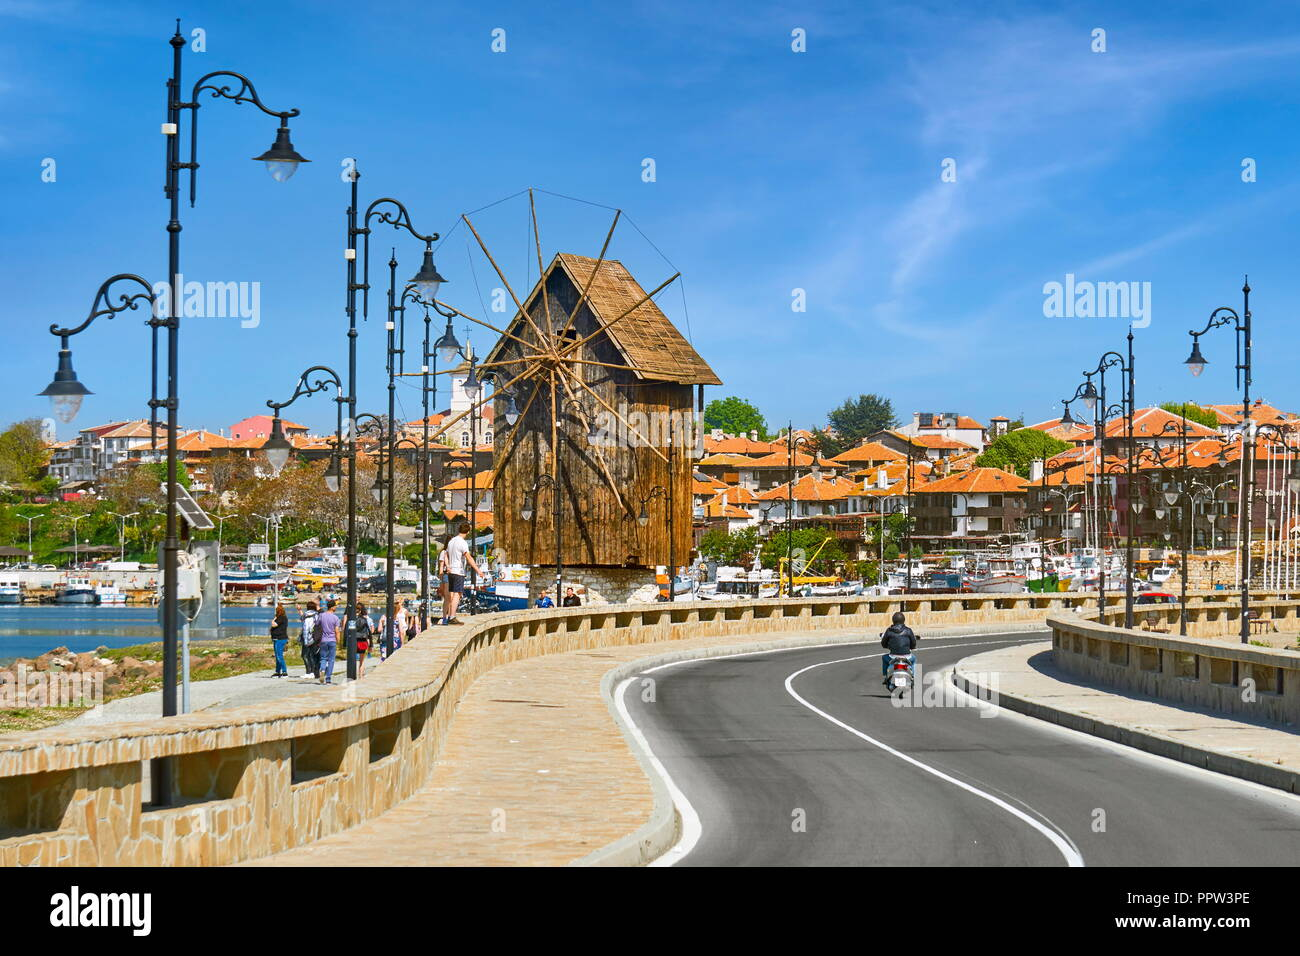 Wooden windmill, Nessbar old town, Bulgaria - Stock Image